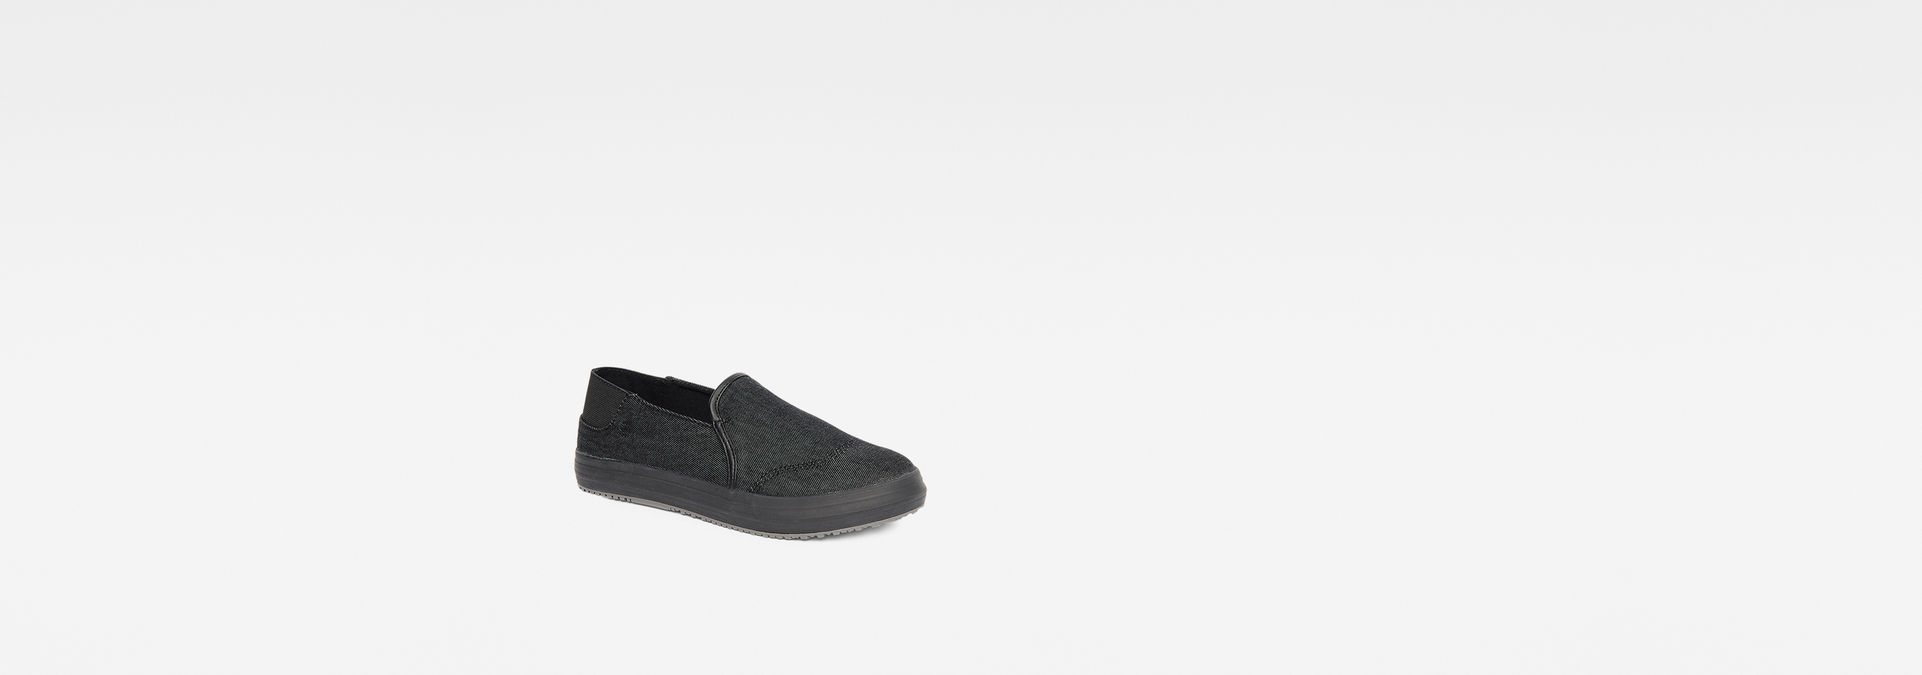 82c0ddcc323 ... G-Star RAW® Kendo Mono Slip-On Sneakers Black sole view ...